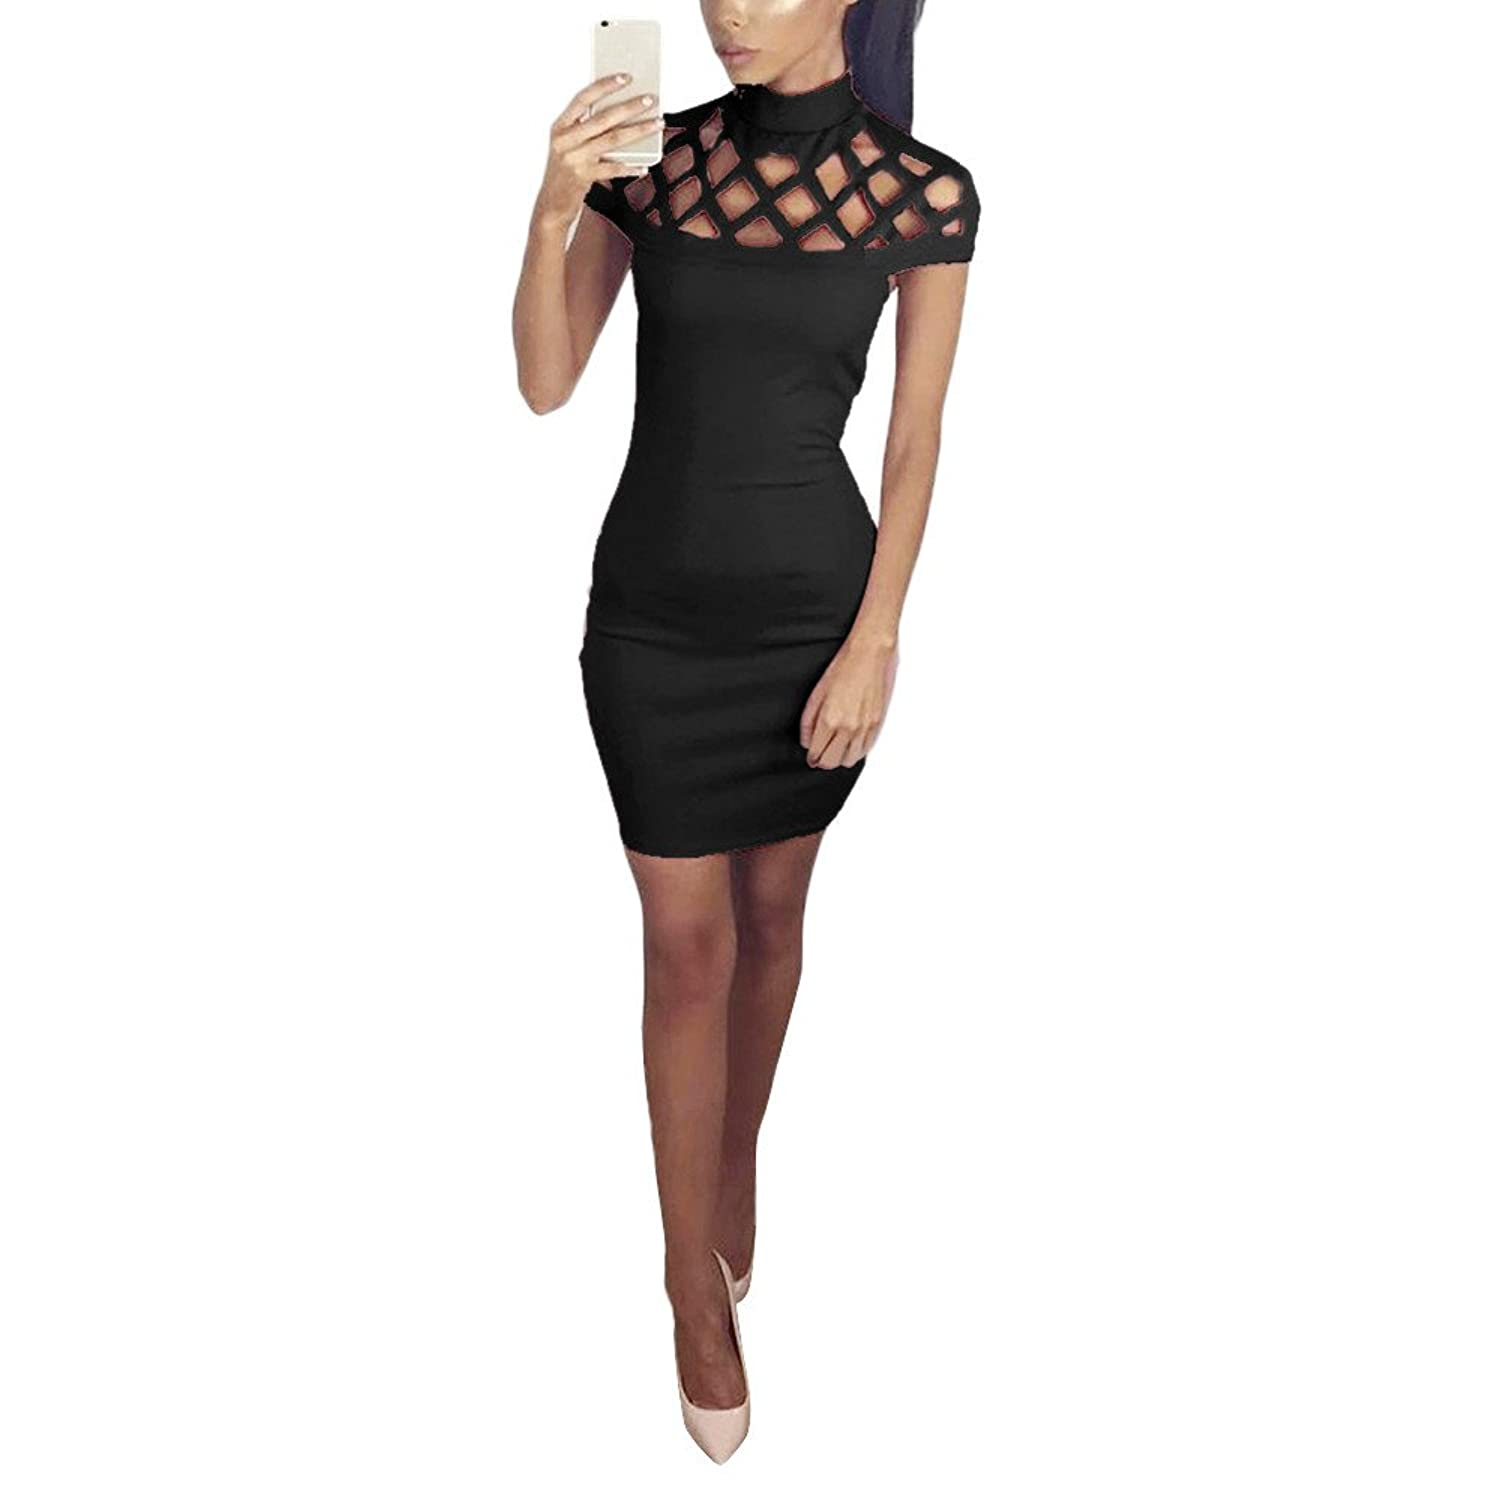 @ KESEE Womens Choker High Neck Bodycon Ladies Caged Sleeves Mini Dress